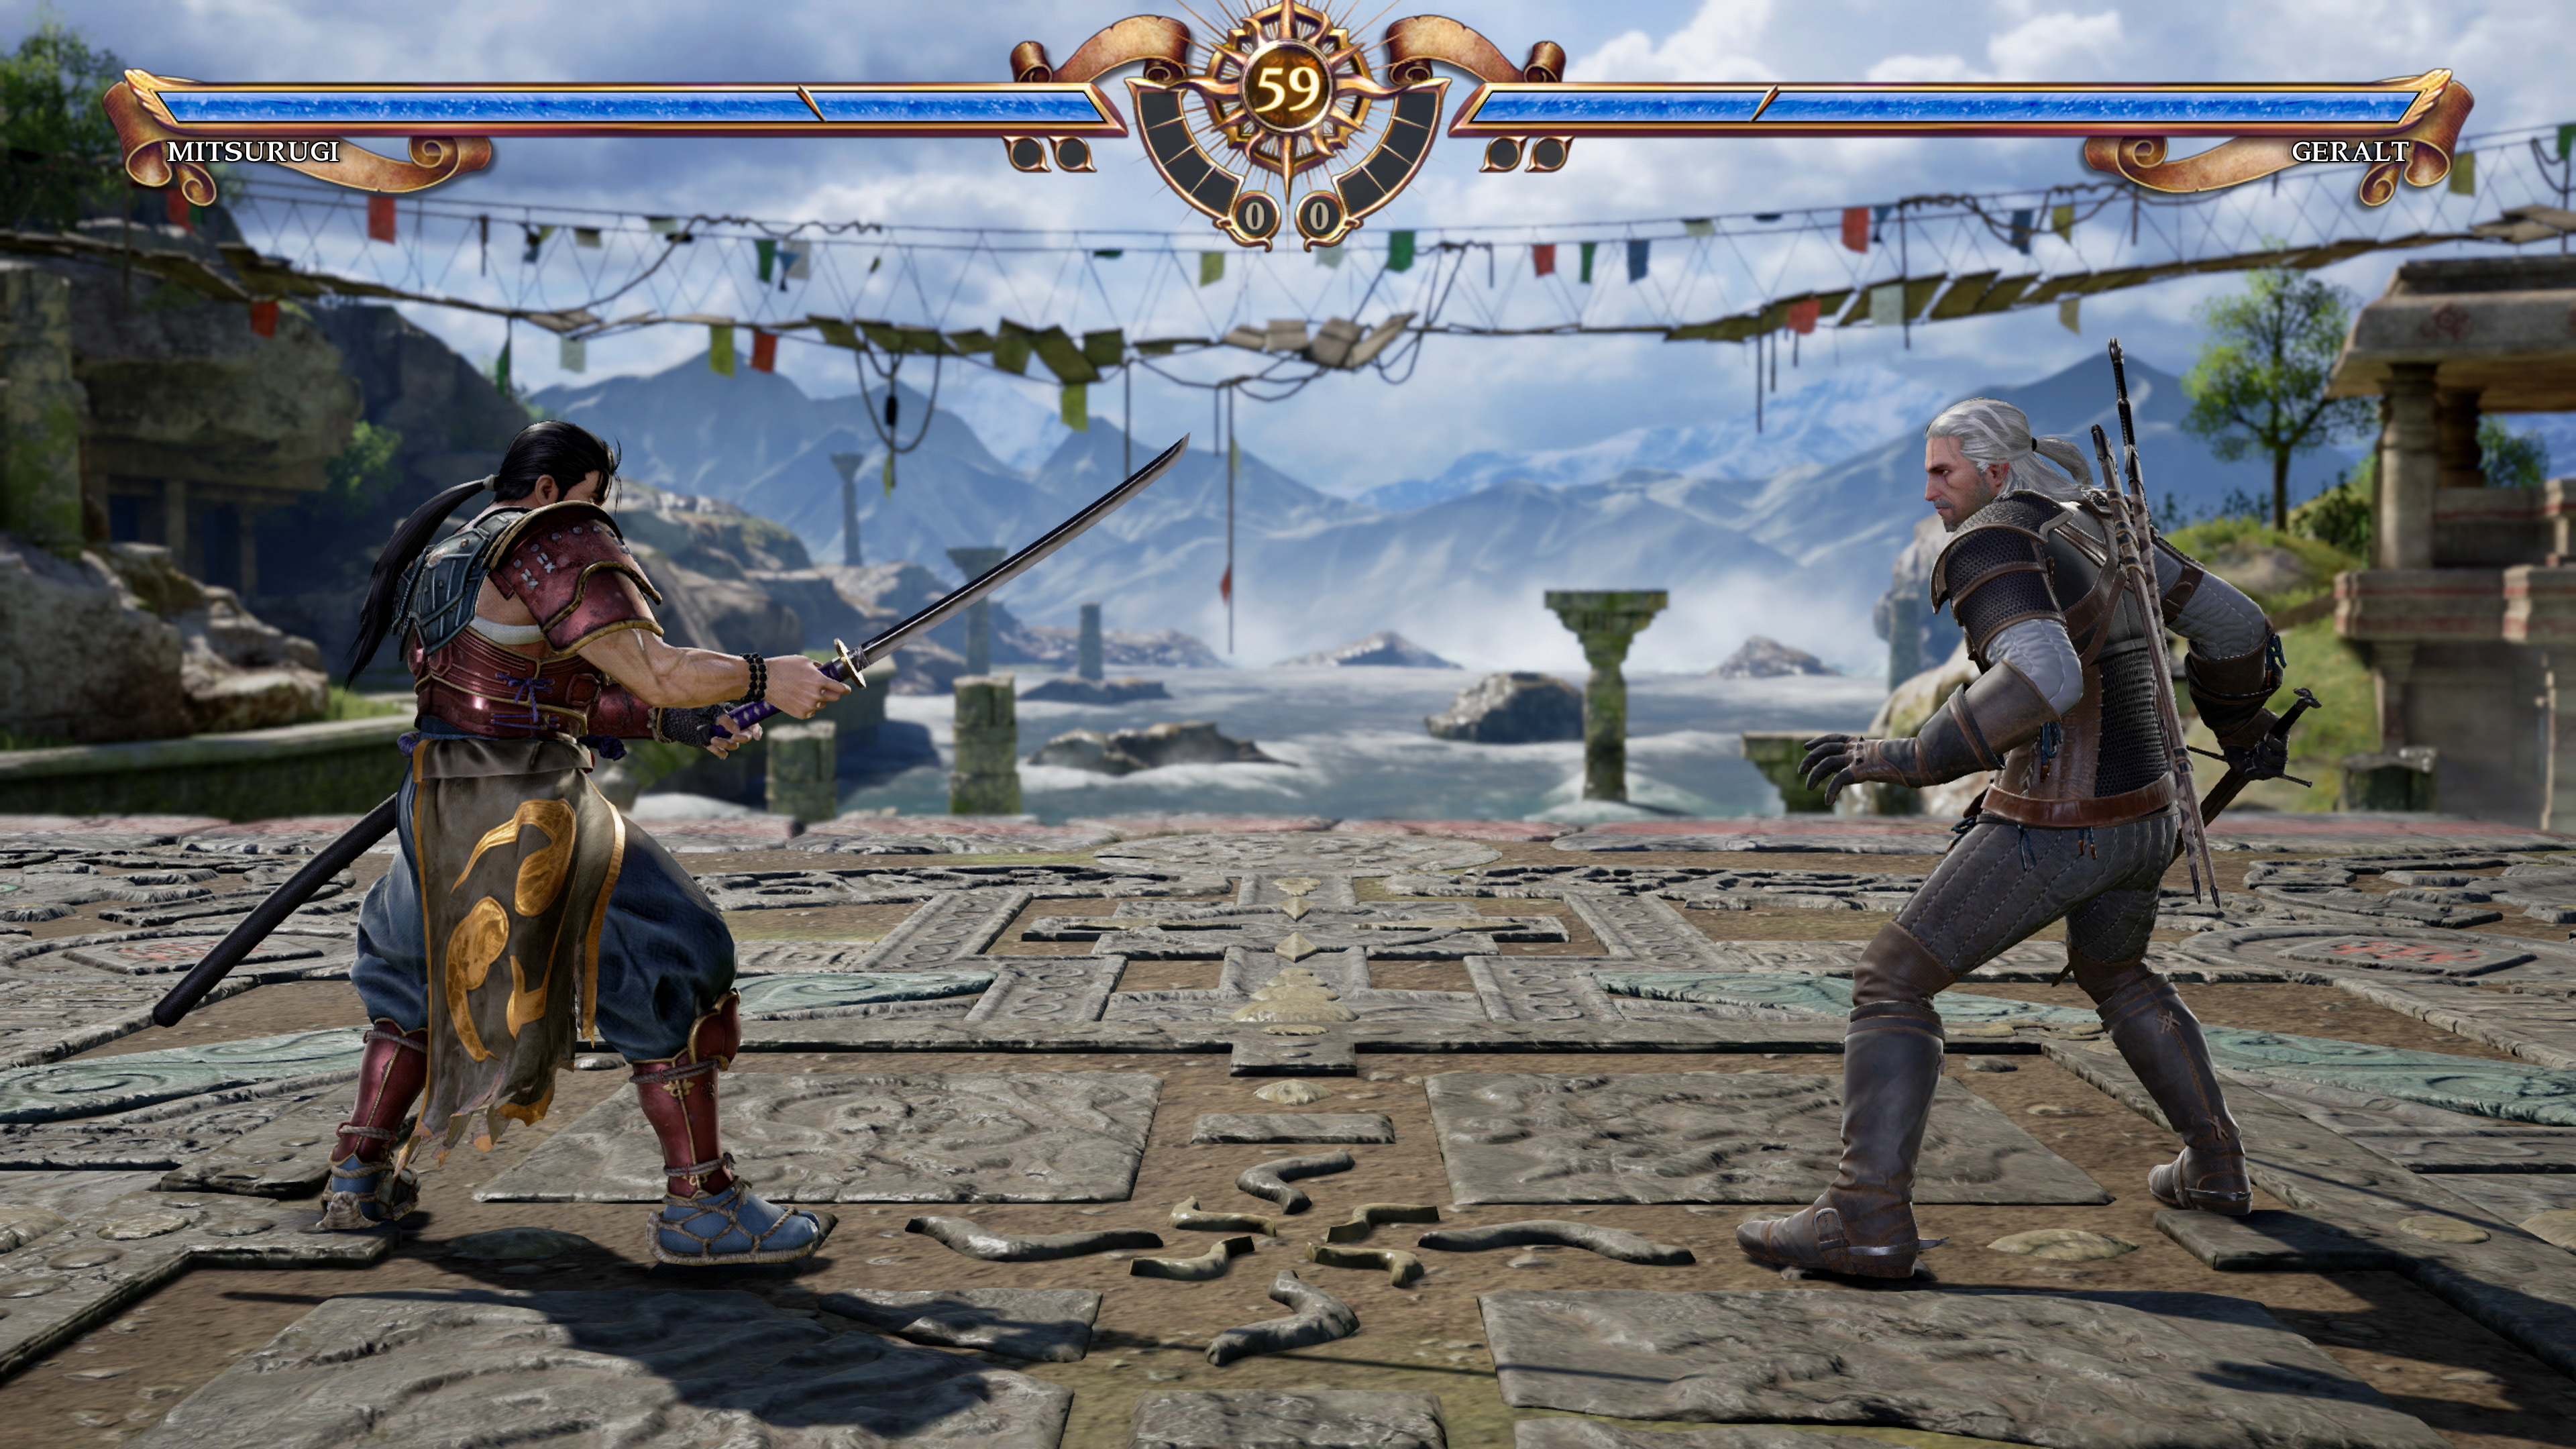 Soulcalibur 6 analysis: every version tested • Eurogamer net